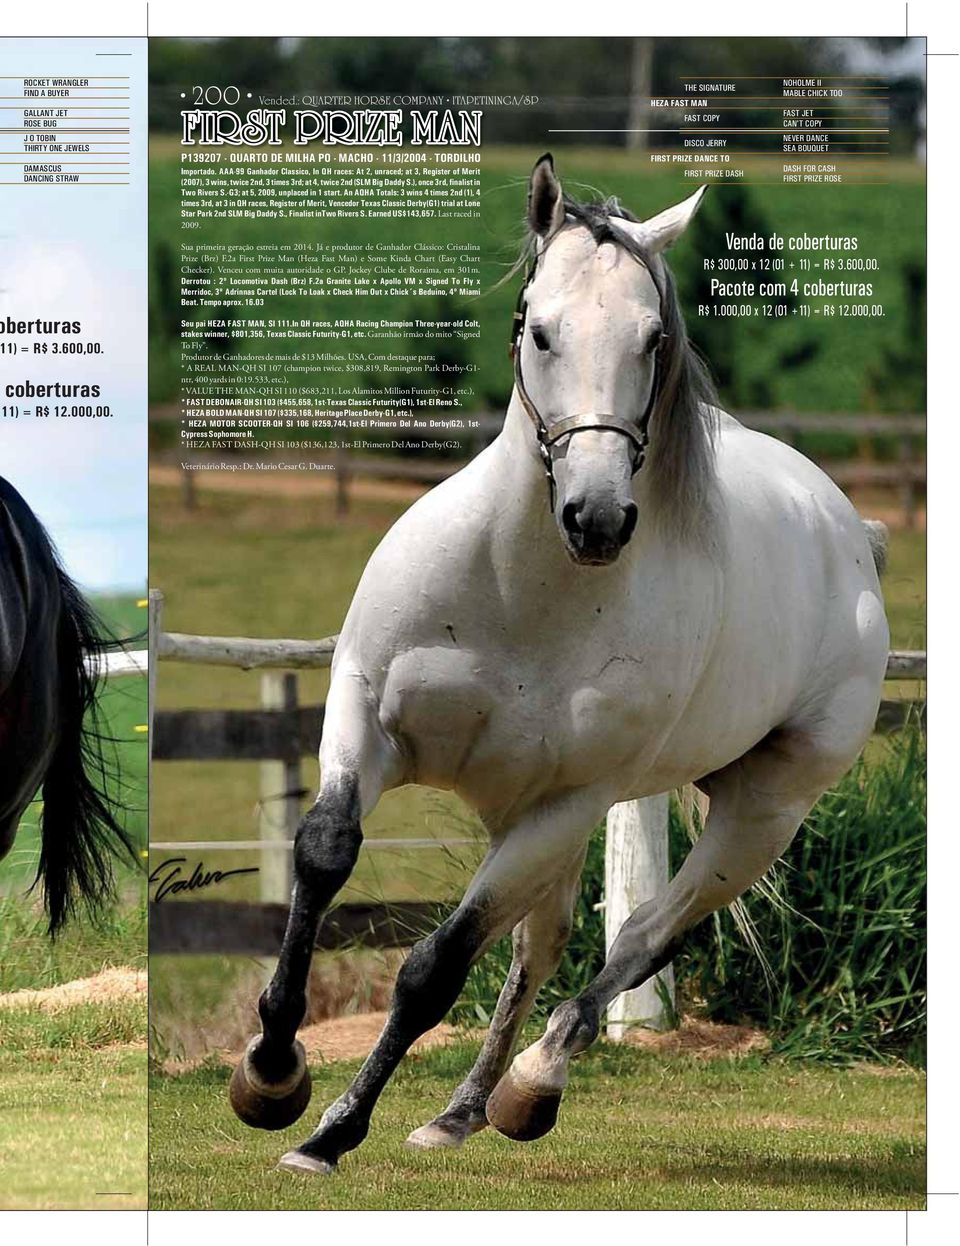 AAA-99 Ganhador Classico, In QH races: At 2, unraced; at 3, Register of Merit (2007), 3 wins, twice 2nd, 3 times 3rd; at 4, twice 2nd (SLM Big Daddy S.), once 3rd, finalist in Two Rivers S.